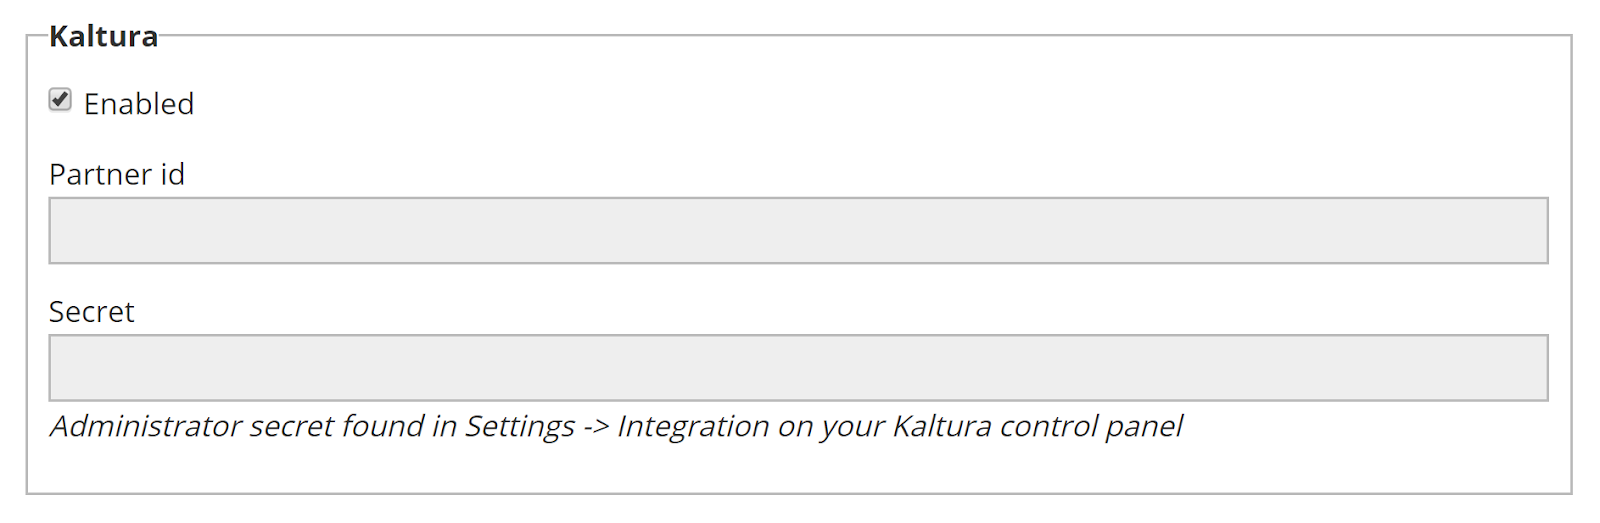 Kaltura section on Amara team integrations page with integration enabled and text fields for partner id and secret